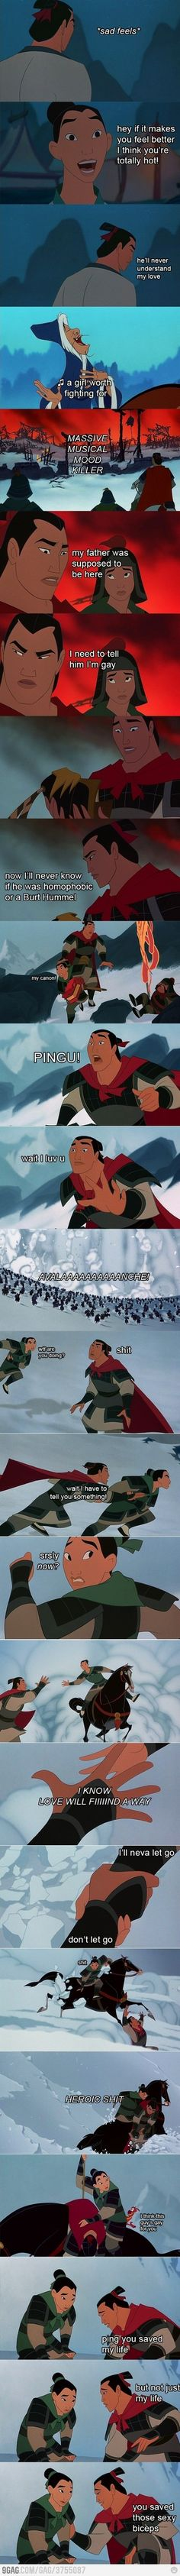 Am I Gay? Self-discovery with Shang. Part II (I'm also loving the Burt Hummel reference...just saying)